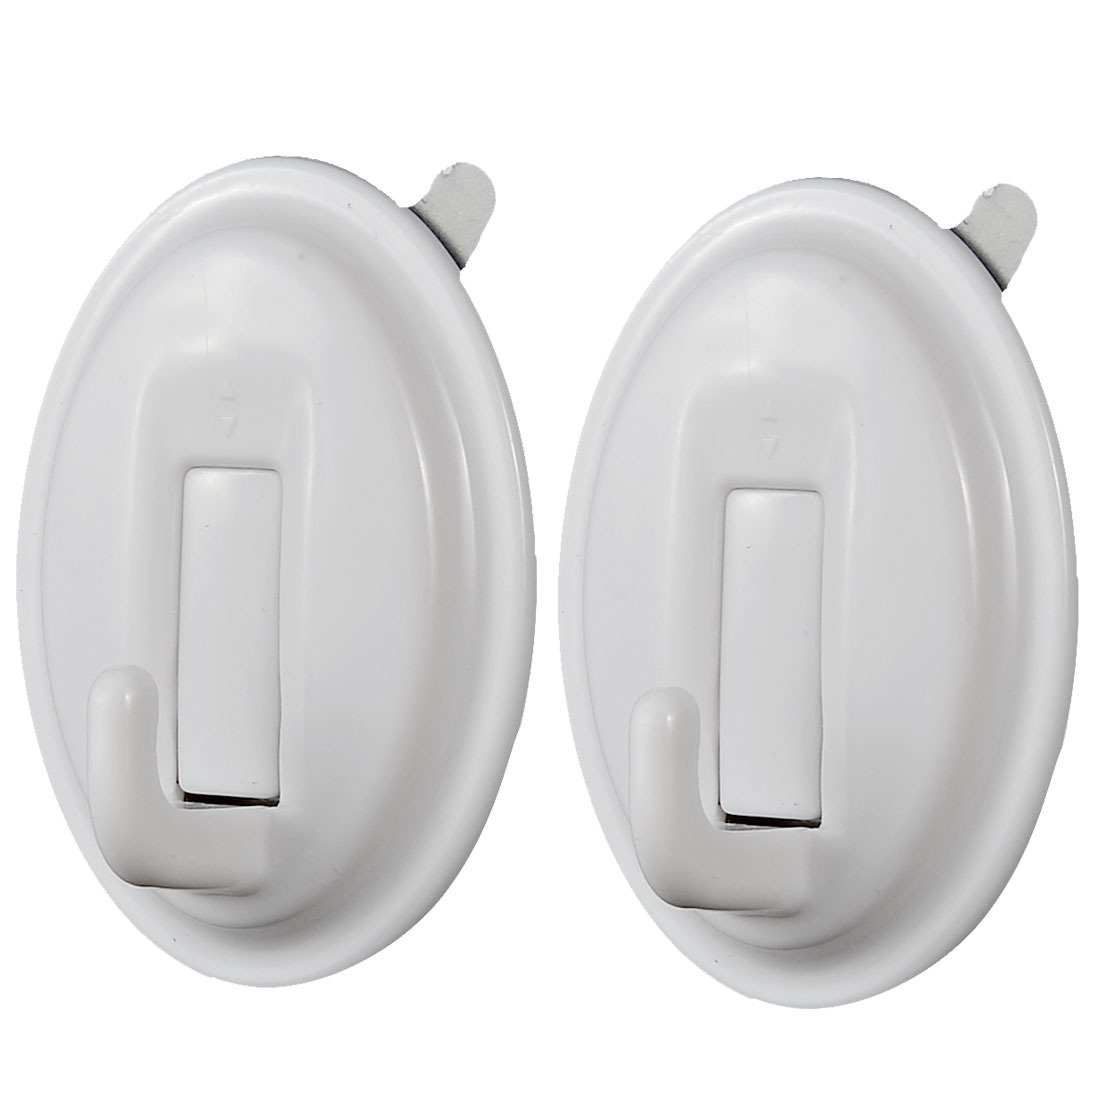 Bathroom Oval Shape No Dent Towel Clothes Scarf Hanging Self Adhesive Hook White 2pcs